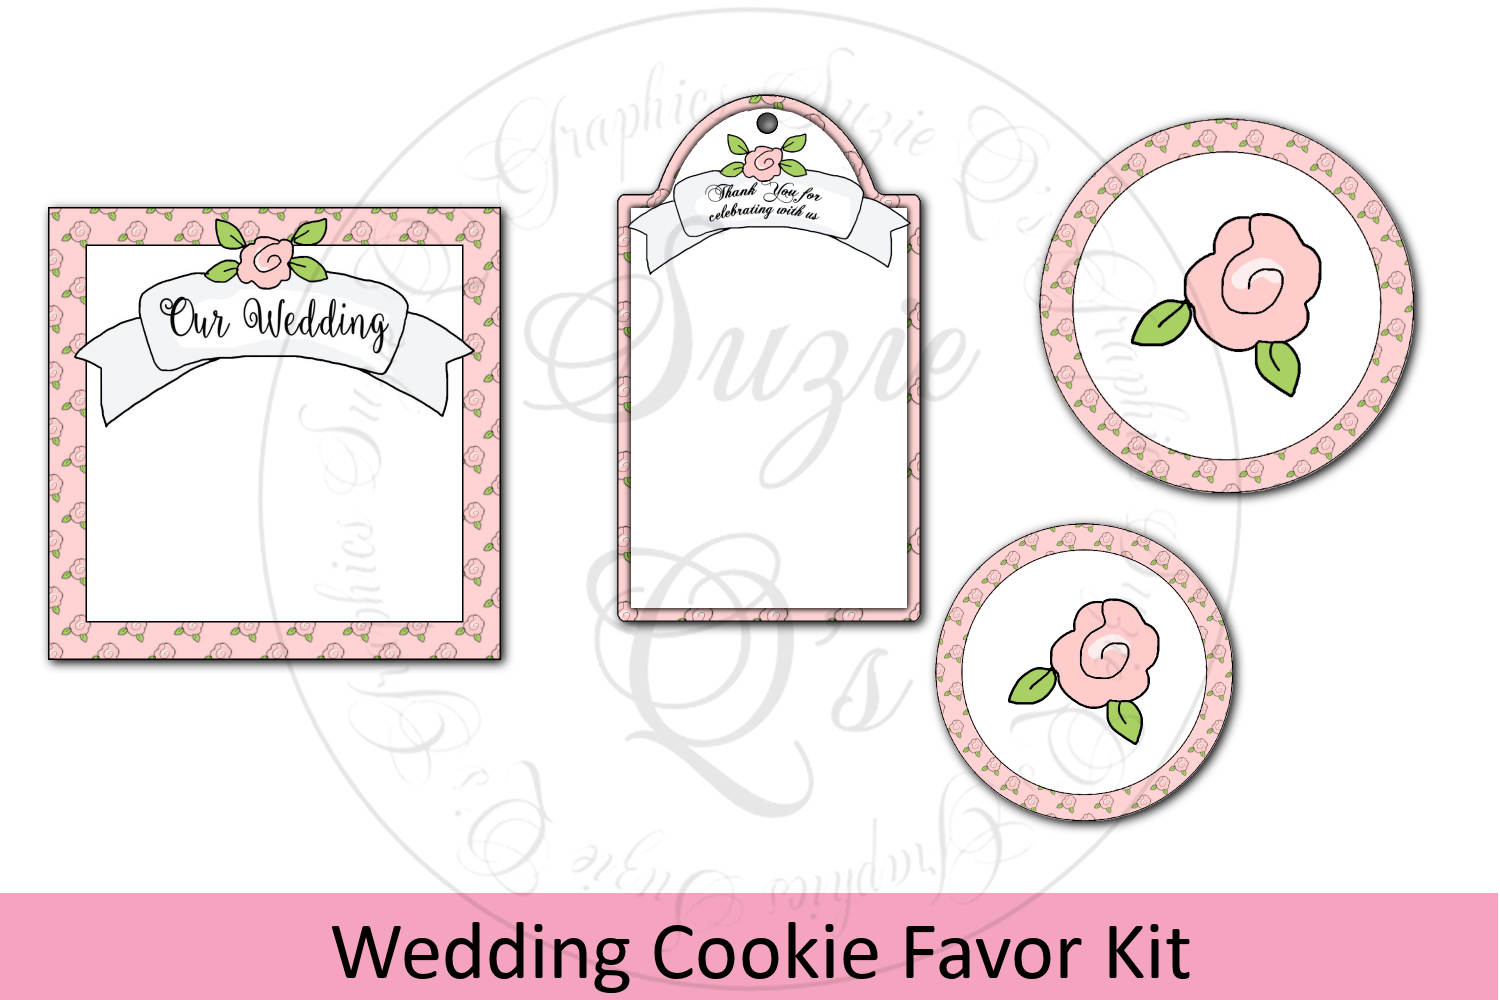 Wedding Cookie Favor Kit with Labels and Tag example image 1